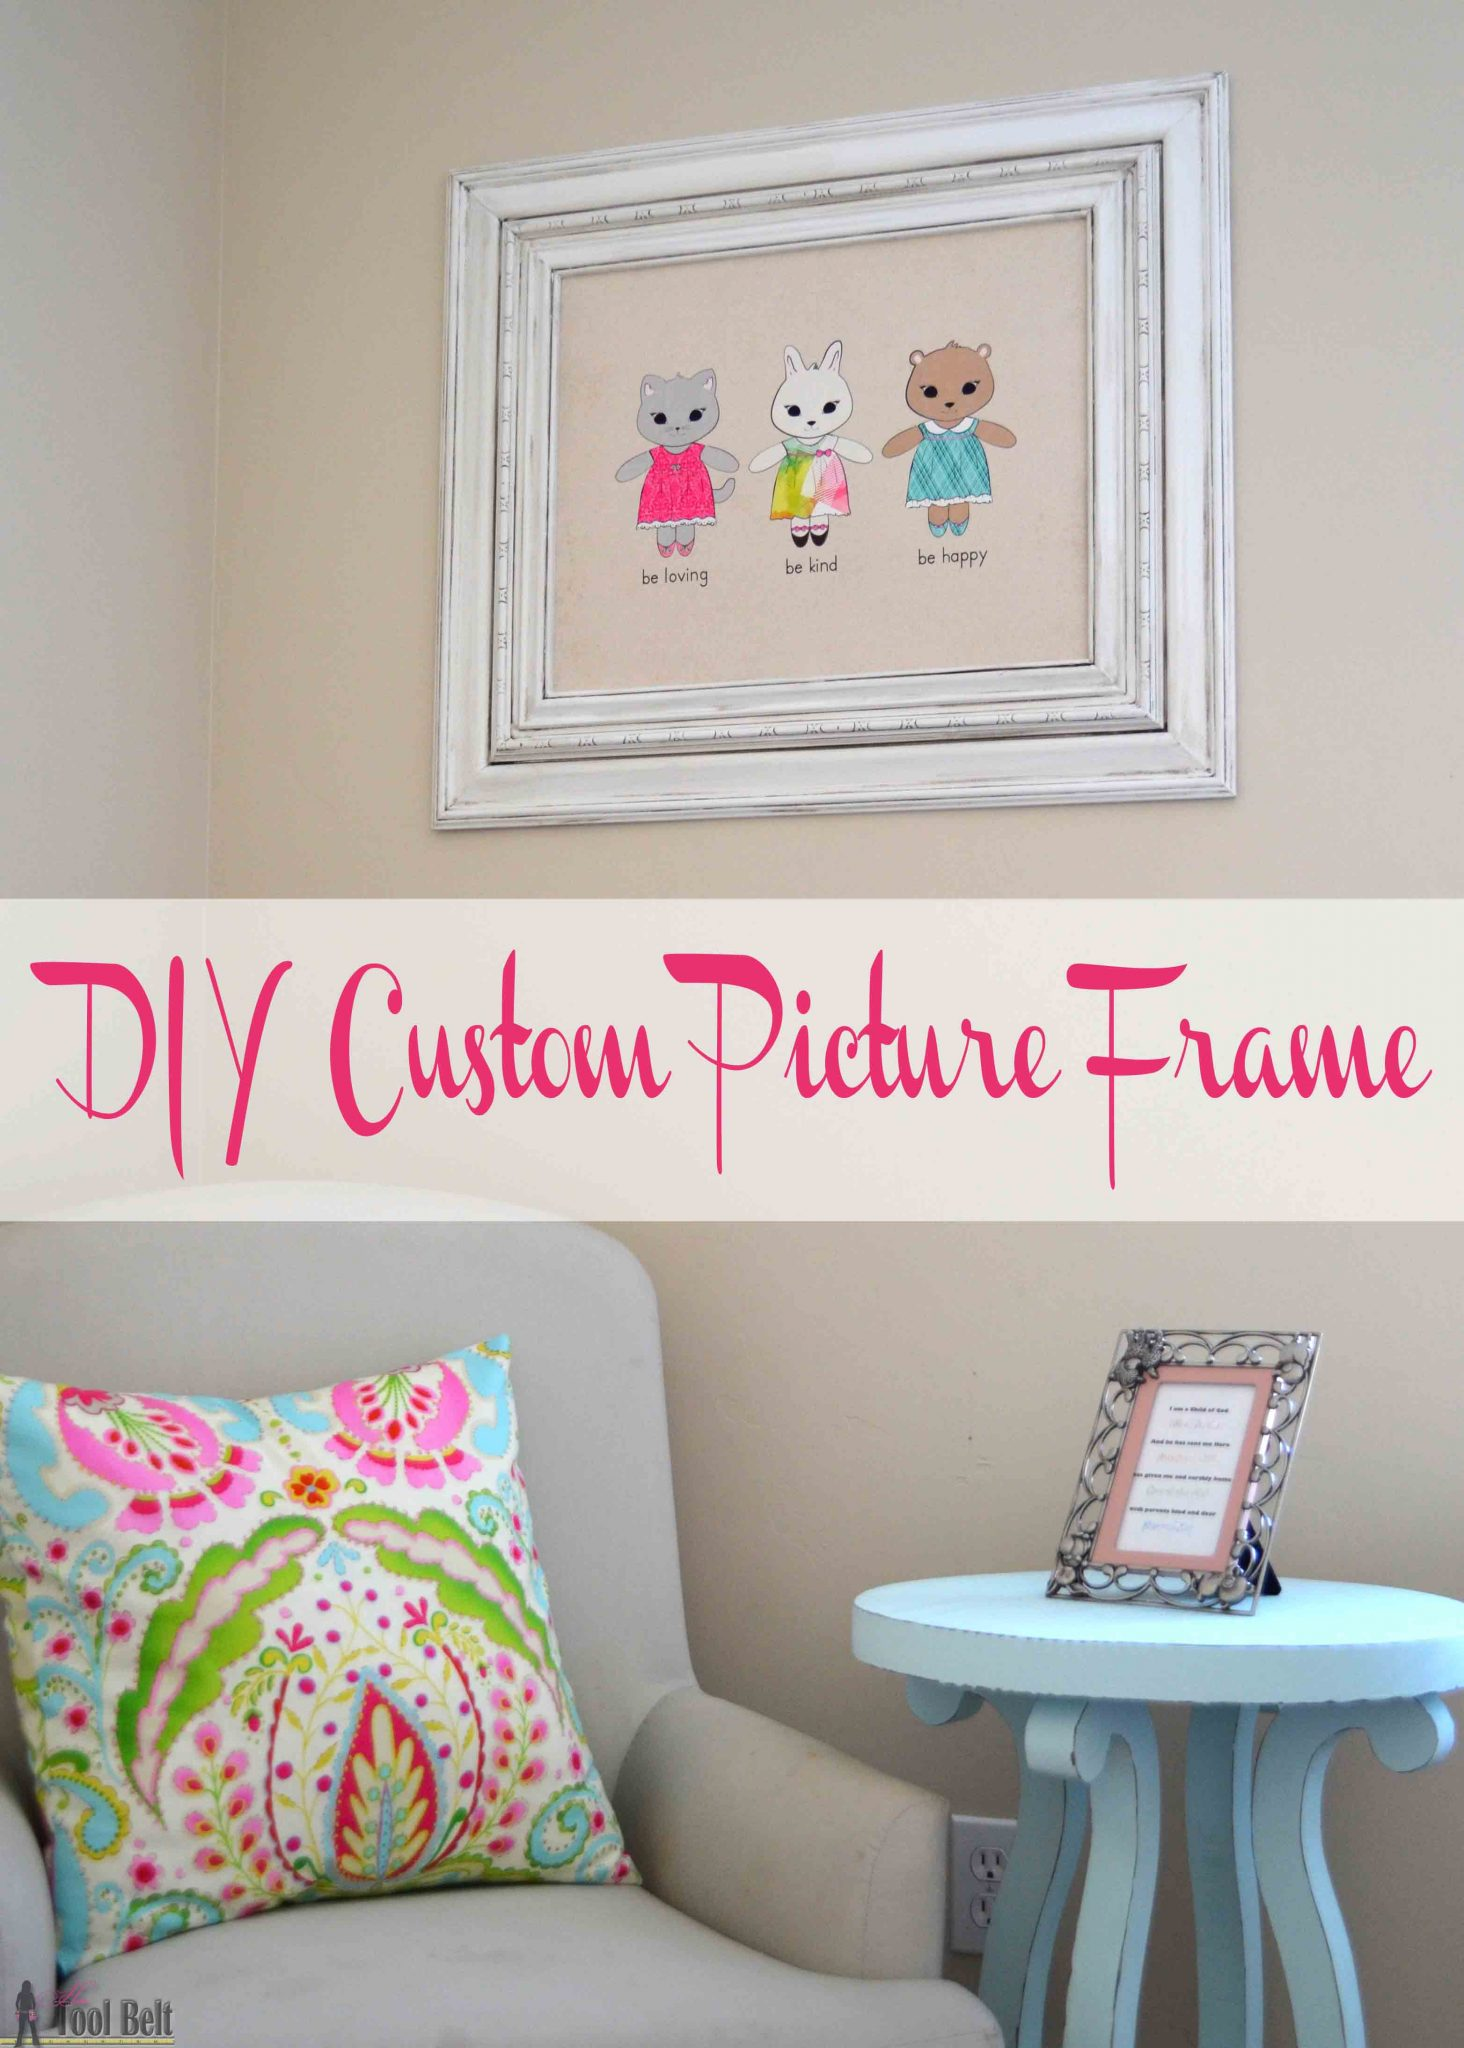 Diy custom picture frame her tool belt build a diy custom picture frame using moulding from the hardware store so much cheaper jeuxipadfo Image collections